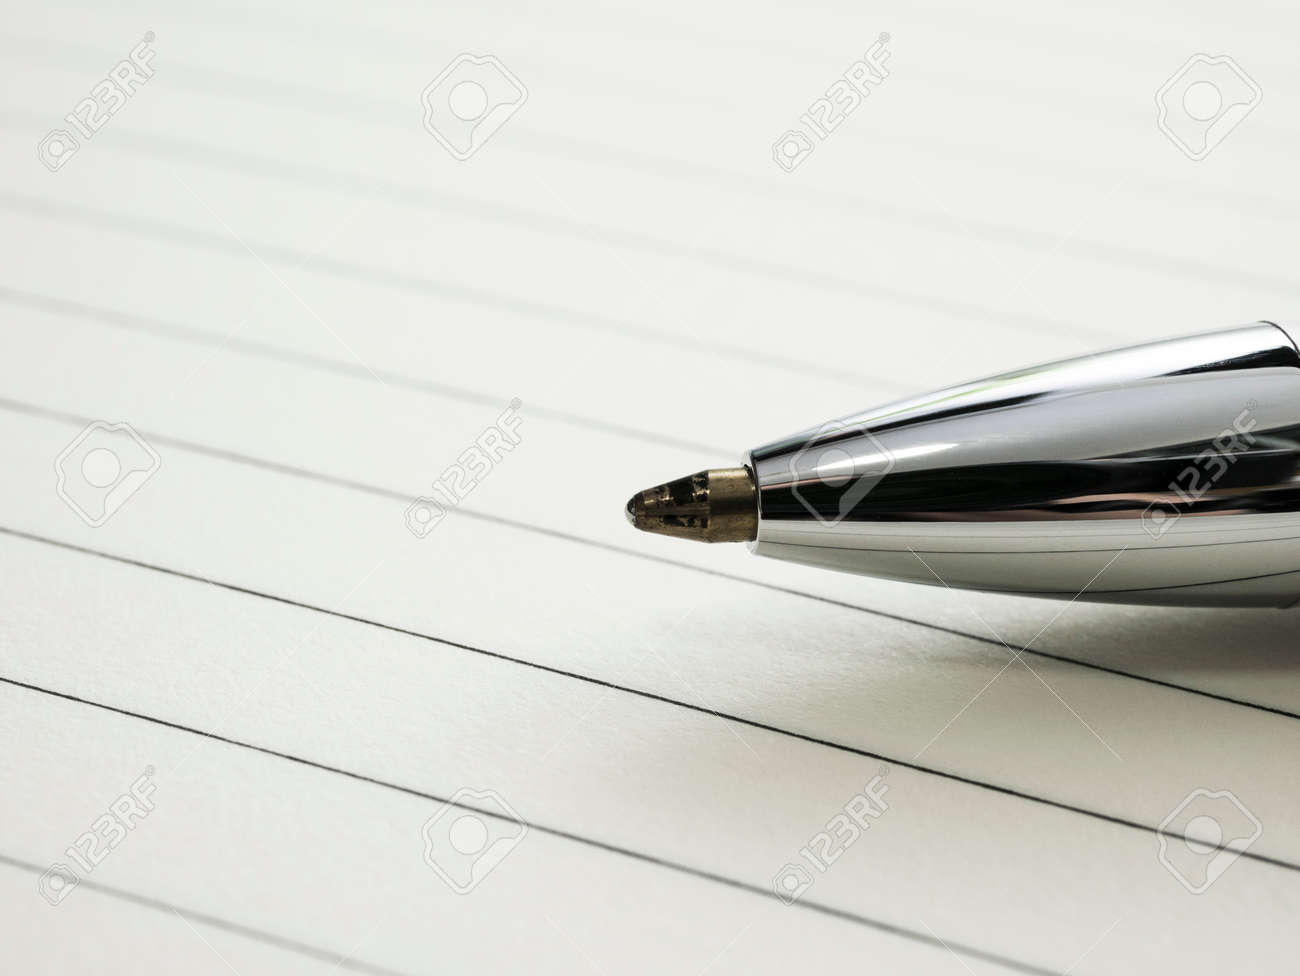 Close up of pen on notebook. - 170462140